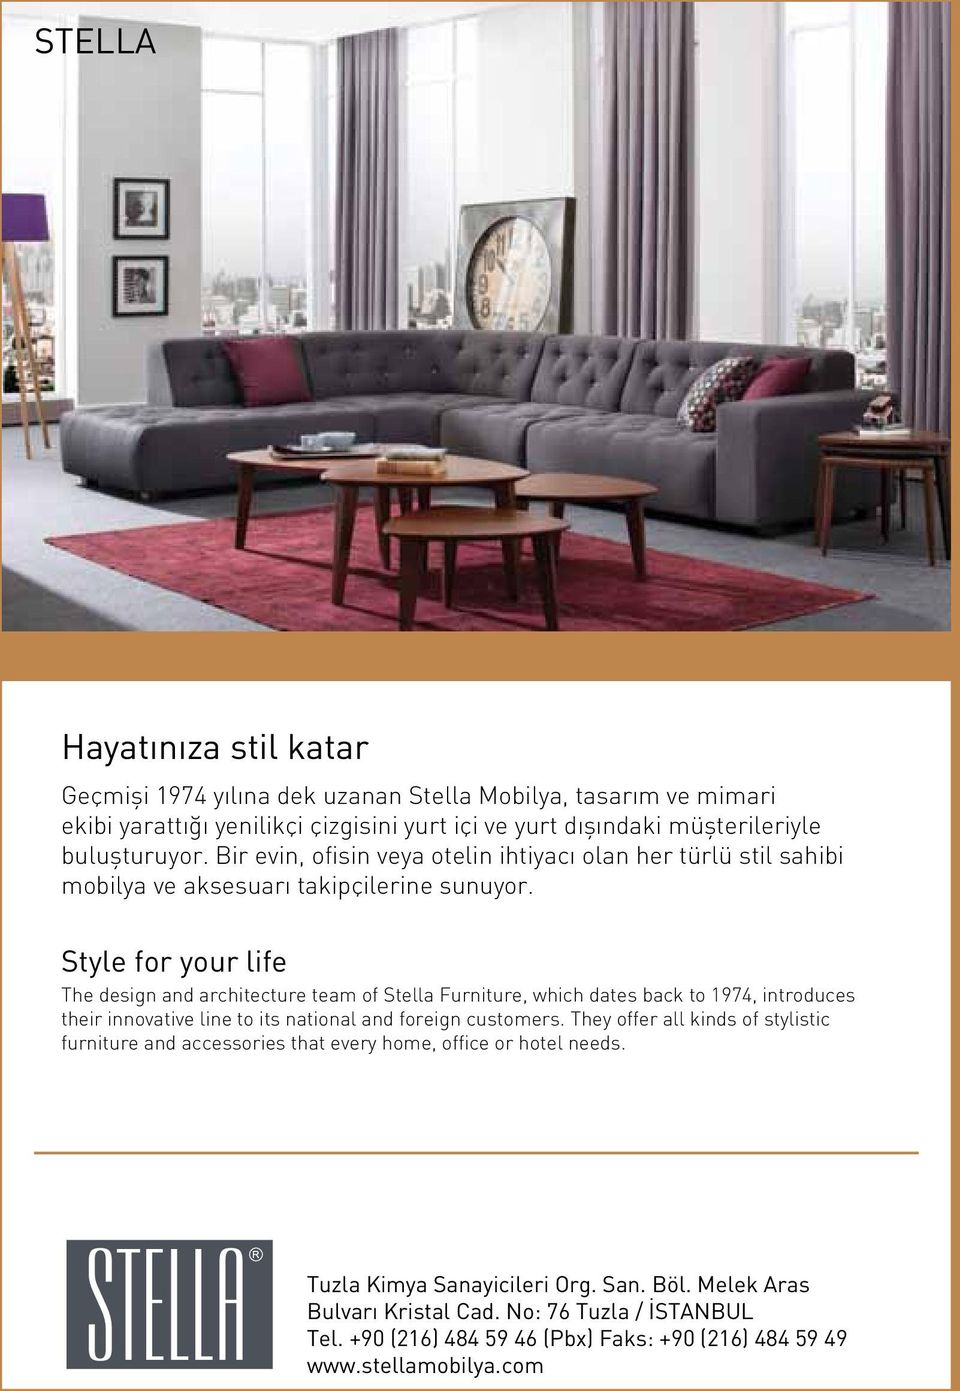 Style for your life The design and architecture team of Stella Furniture, which dates back to 1974, introduces their innovative line to its national and foreign customers.